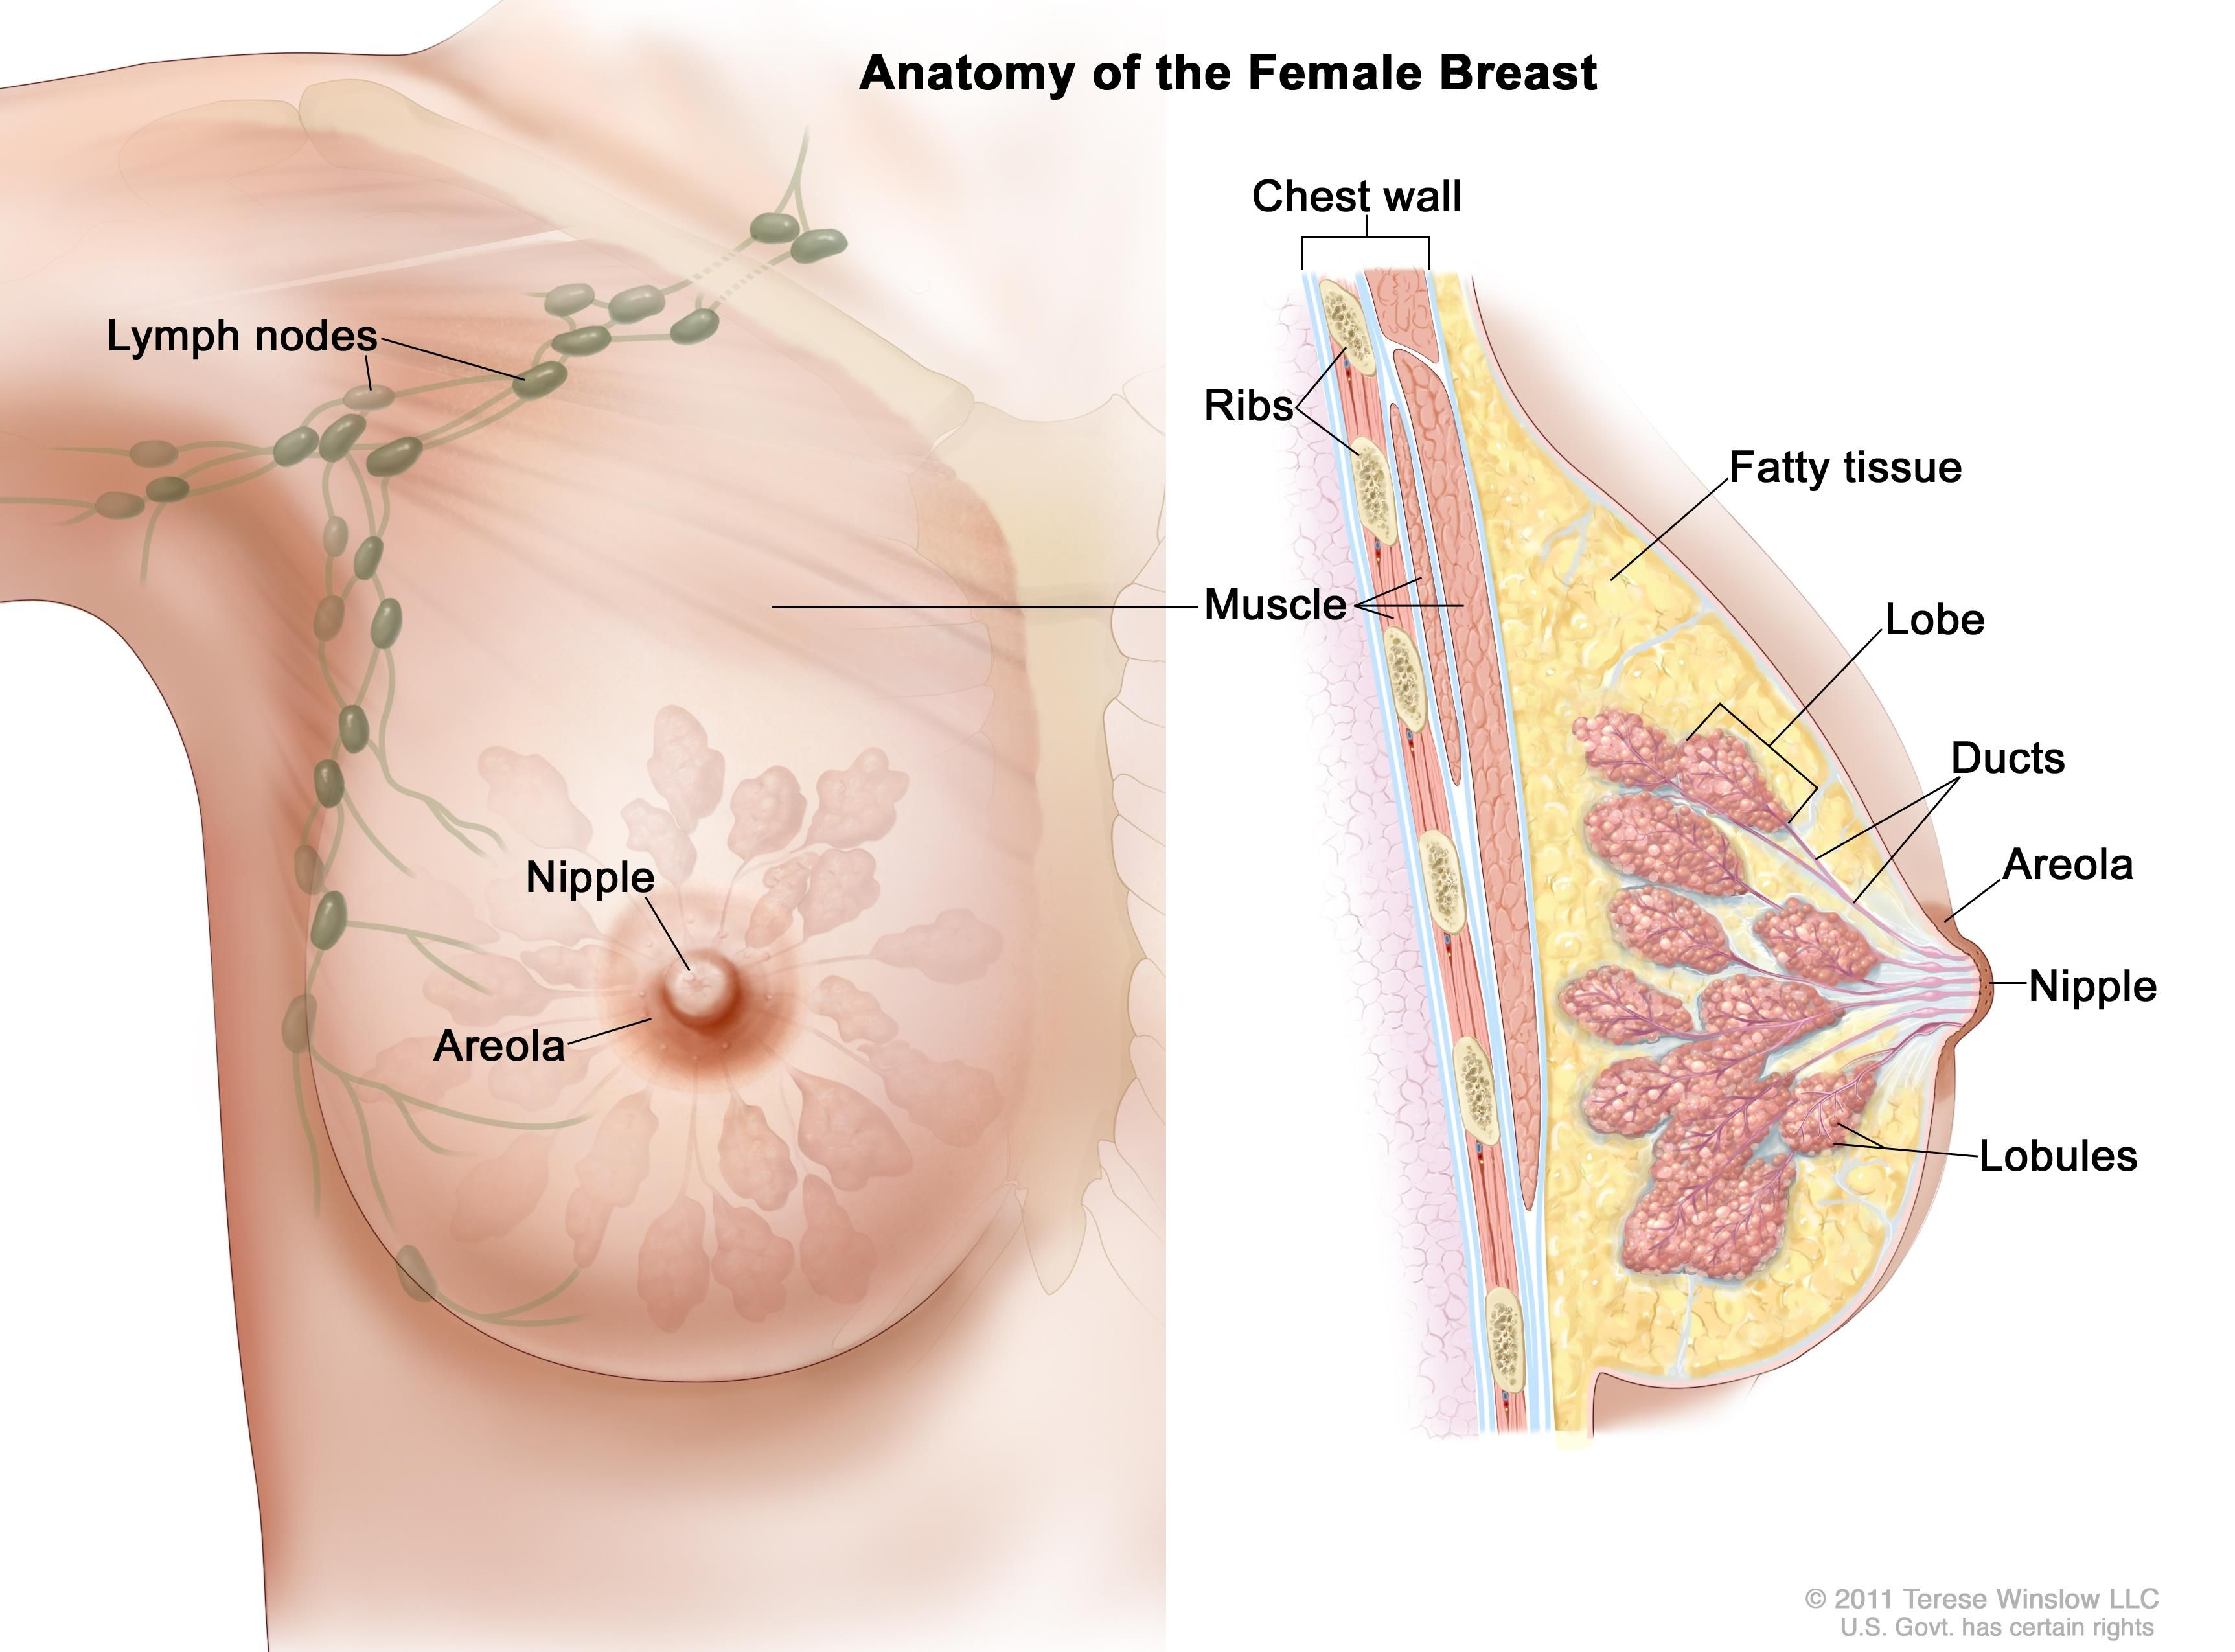 The nipple and areola are shown on the outside of the breast ...